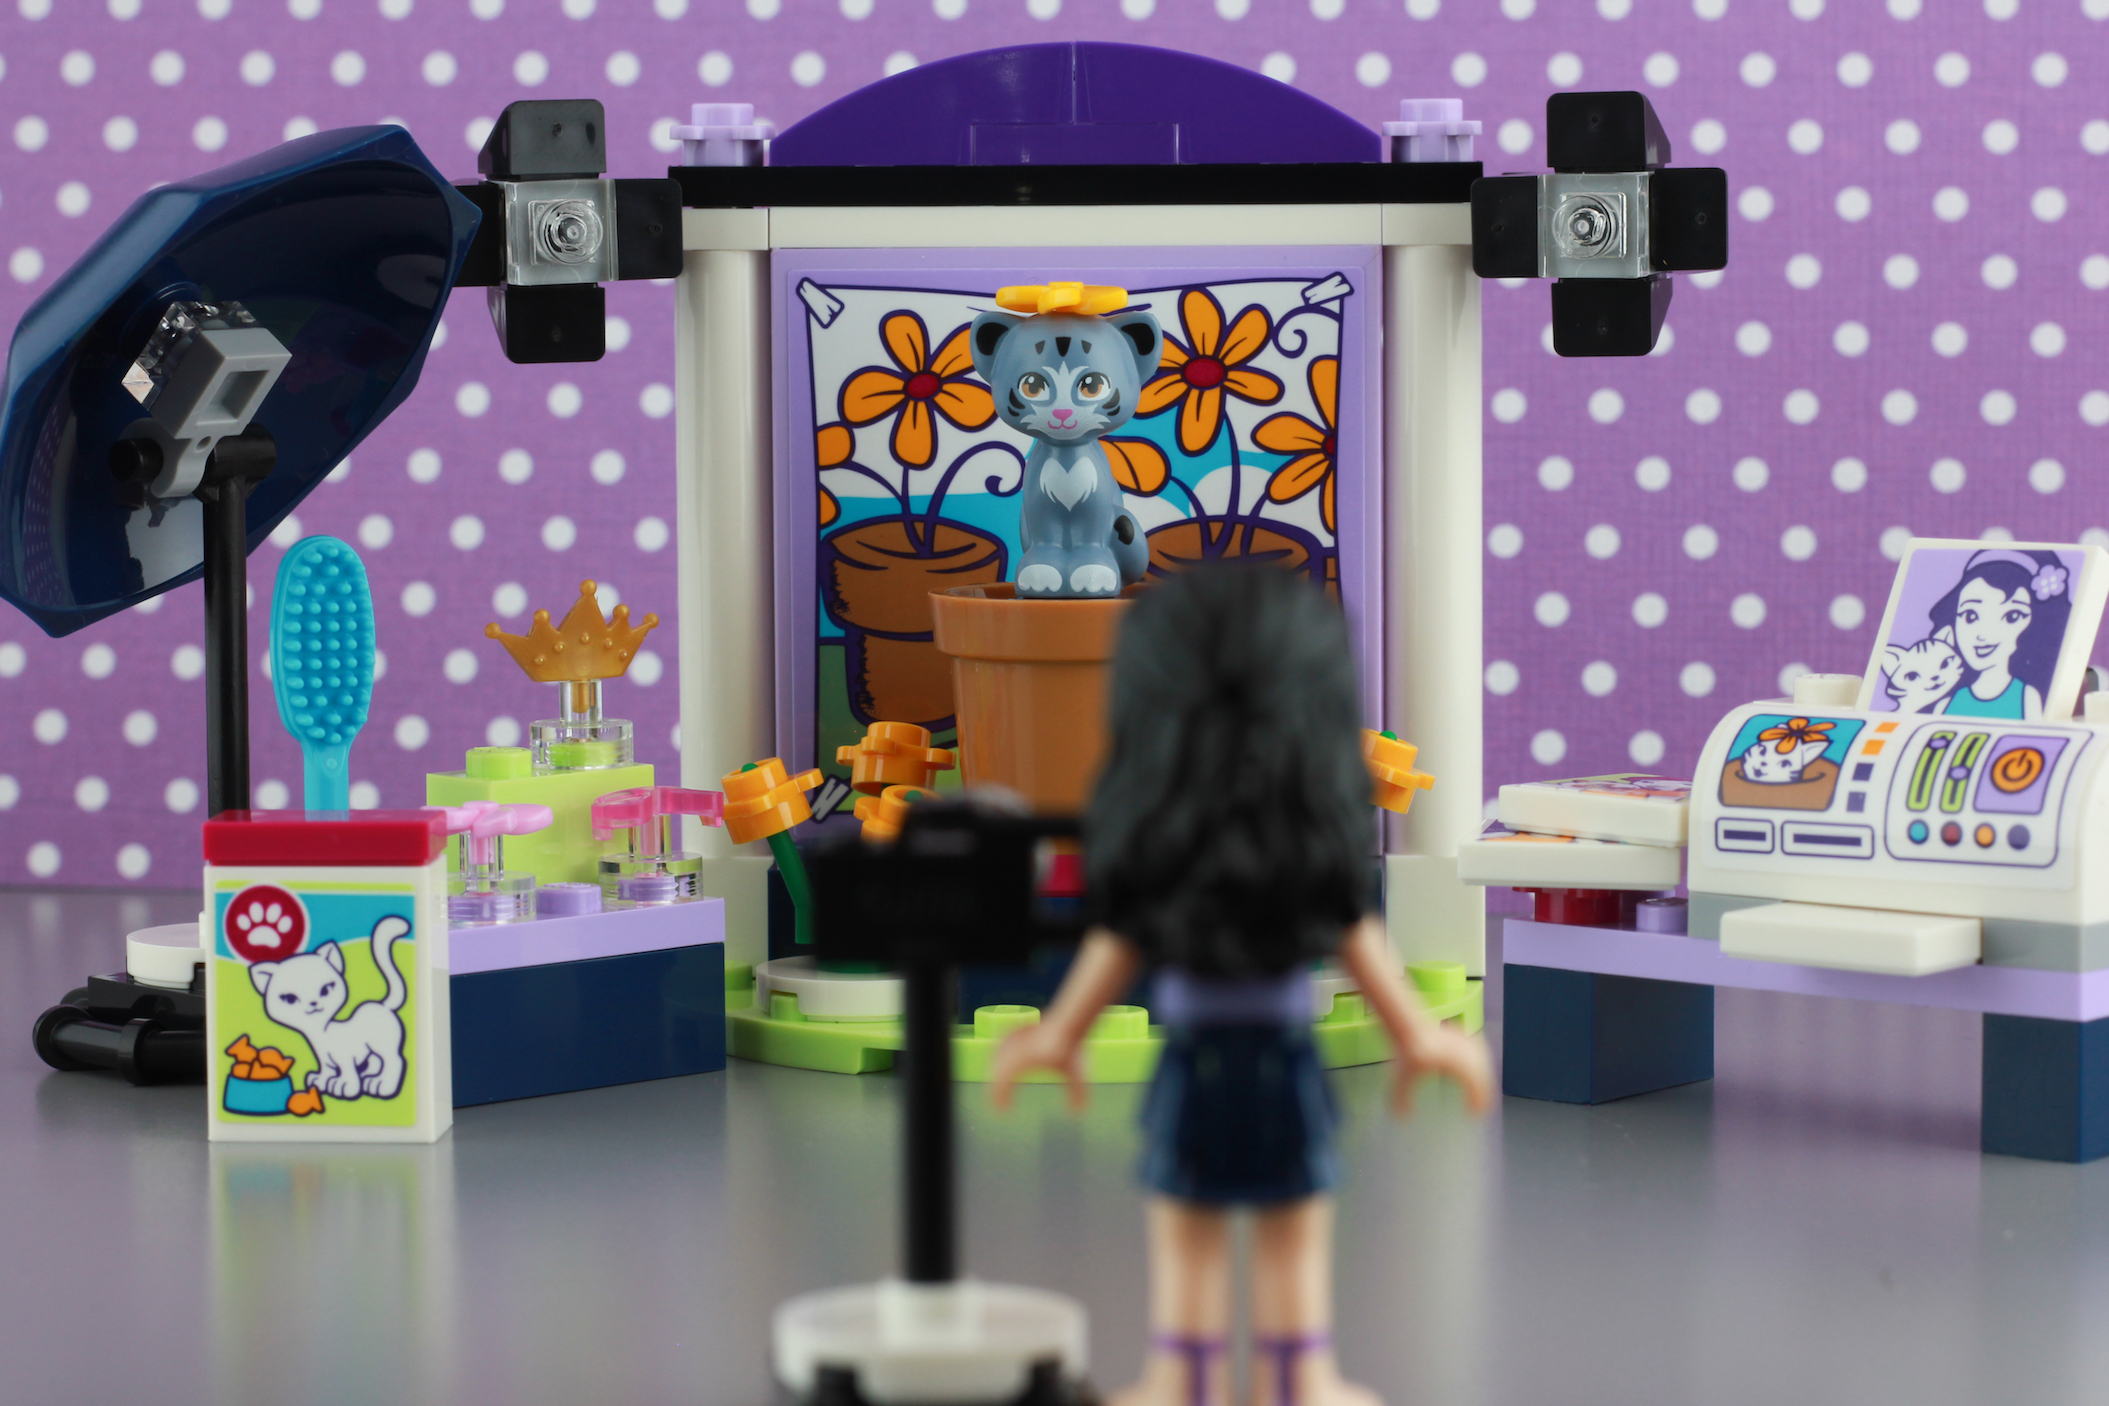 Review: LEGO Friends 41305 Emma's Photo Studio